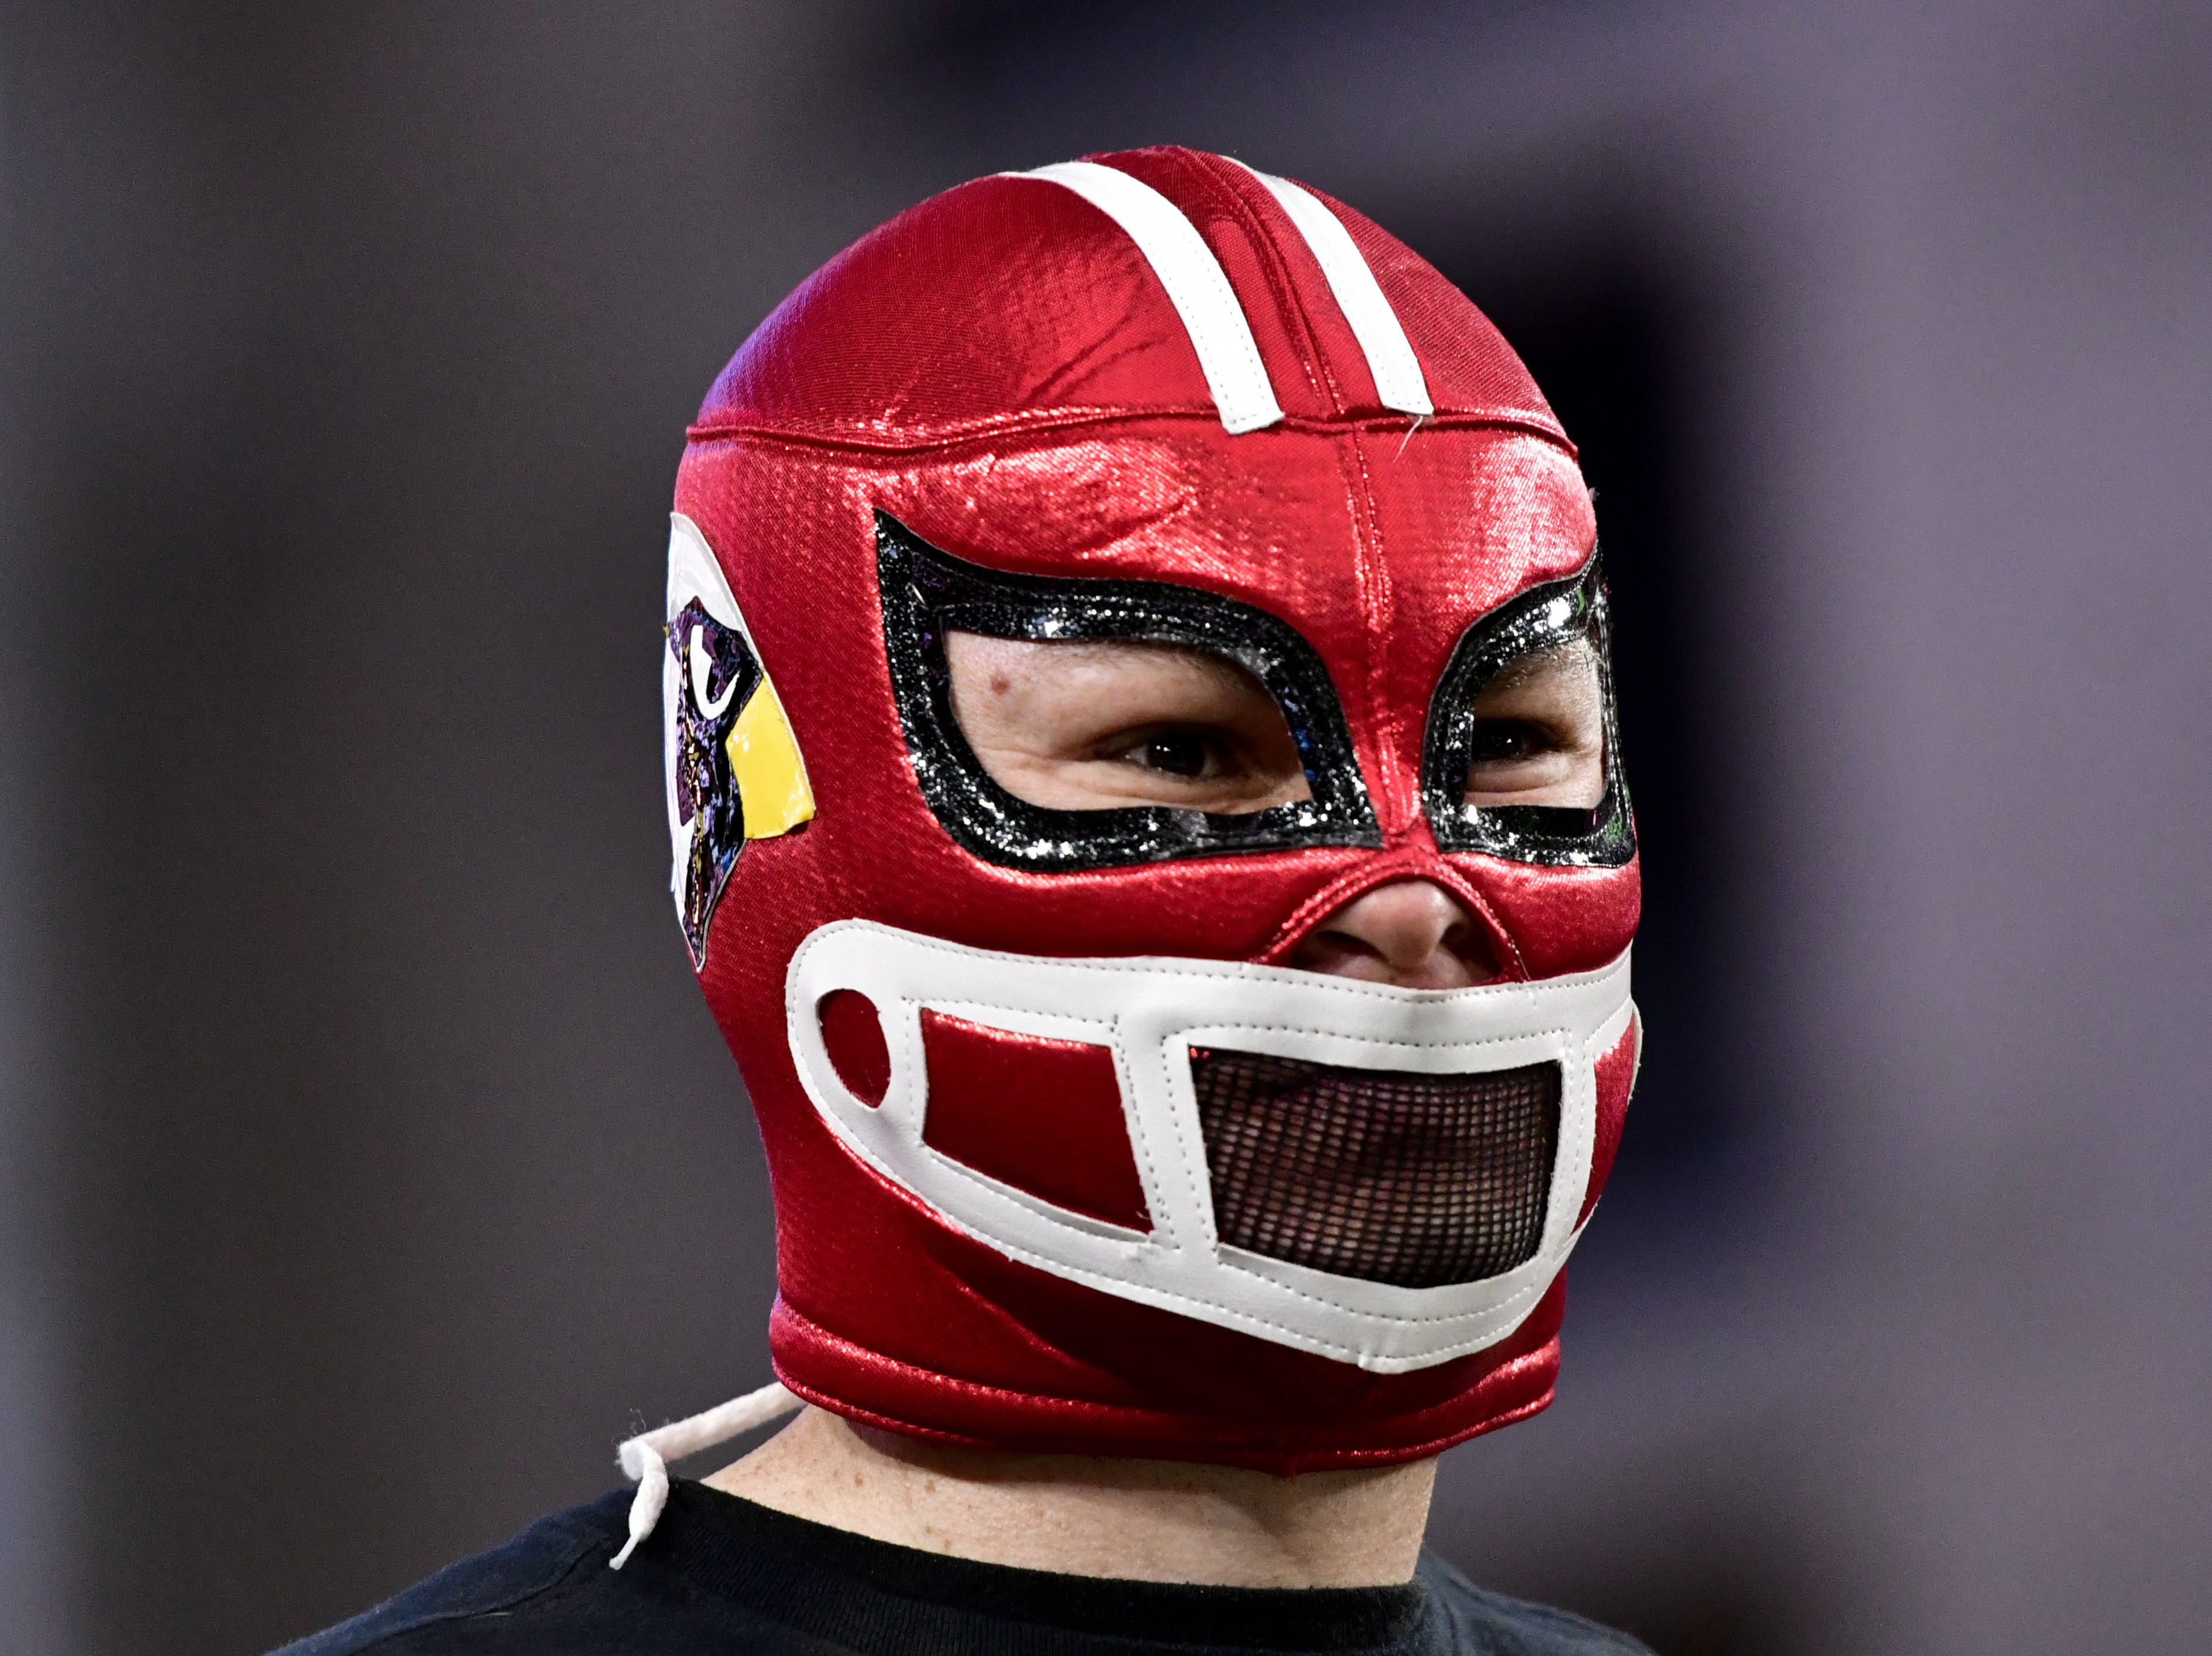 An Arizona Cardinals fan sporting a luchadore mask awaits the start of the game against the Seattle Seahawks on Sept. 30, 2018 at State Farm Stadium.